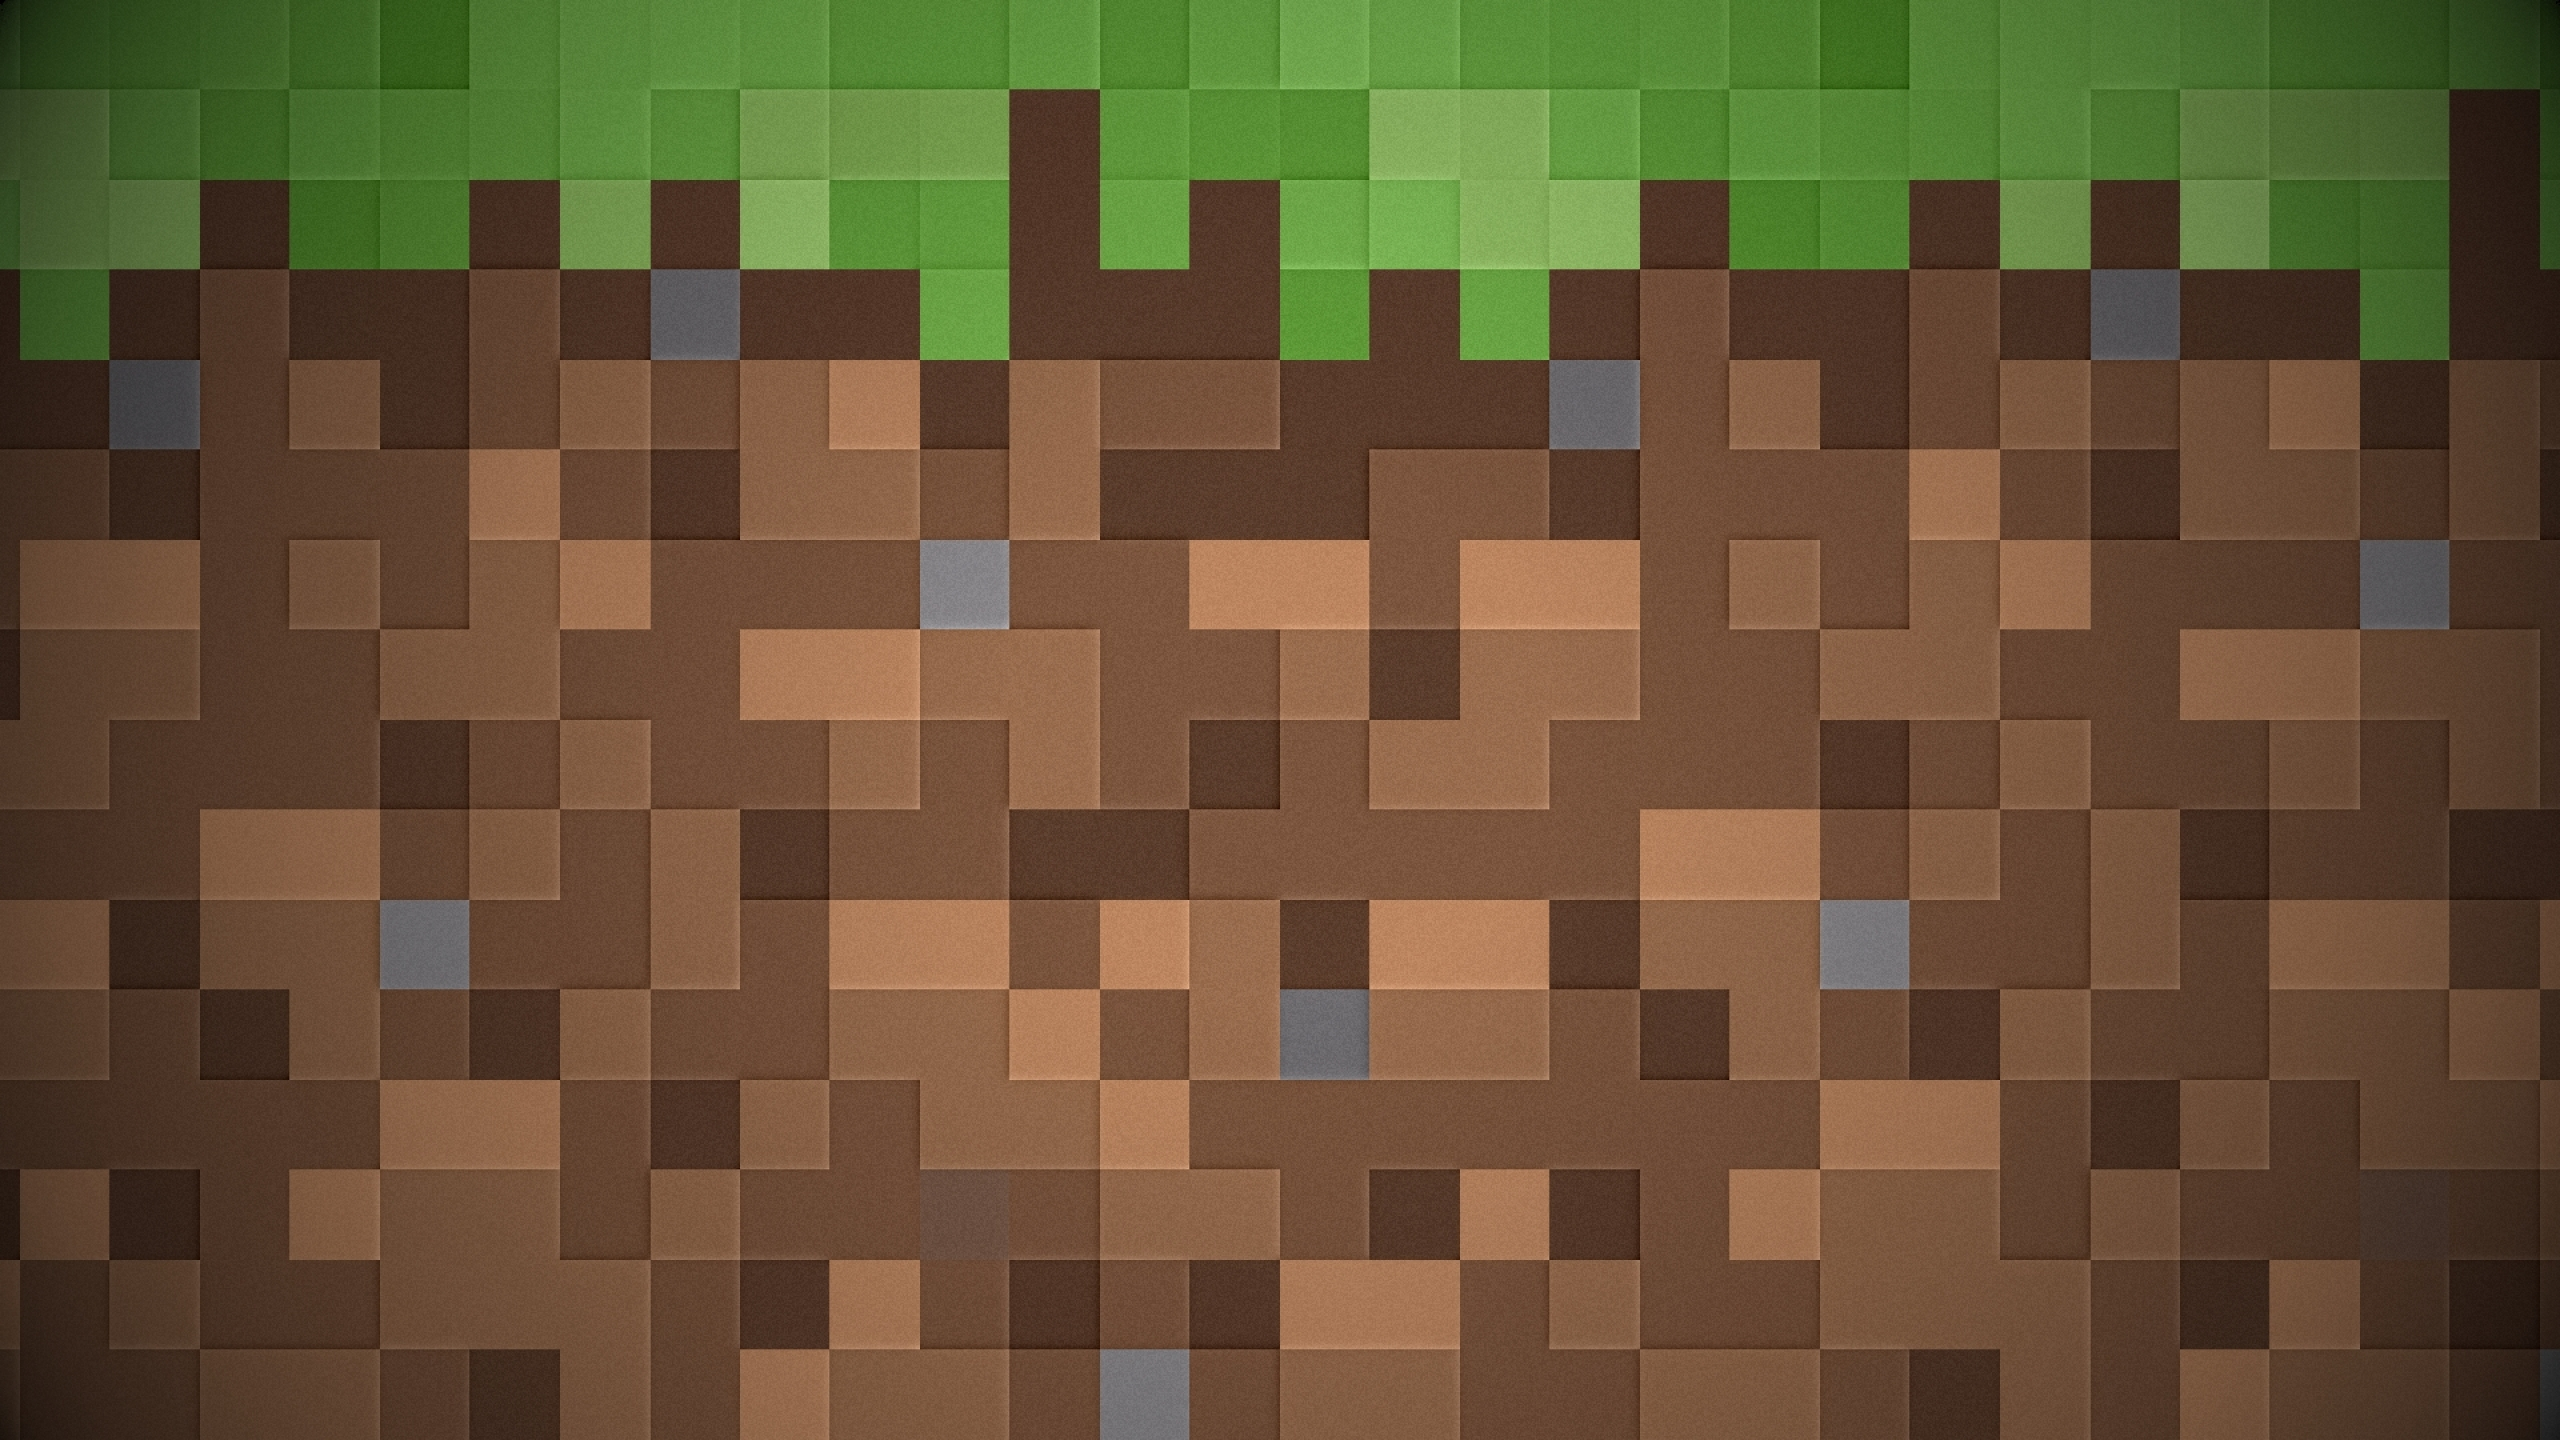 pixels dirt minecraft 1920x1080 wallpaper Miscellaneous HD Wallpaper 2560x1440